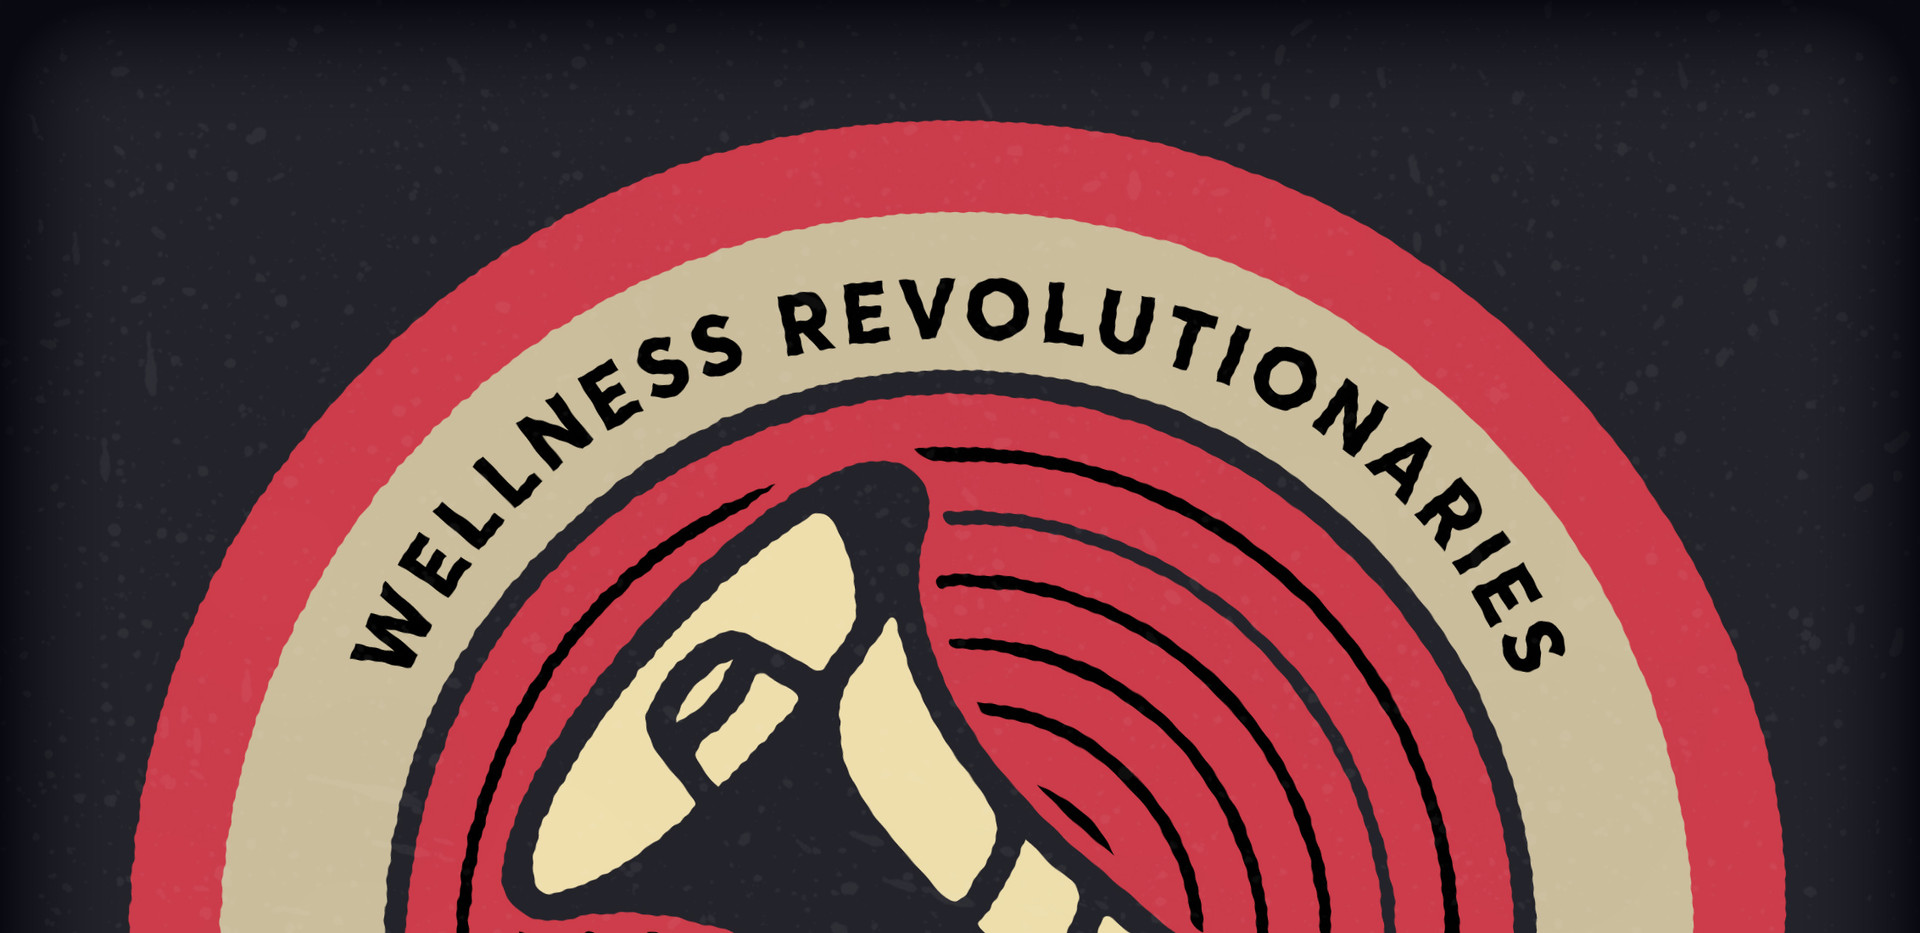 The-Wellness-Revolutionaries-v5.jpg